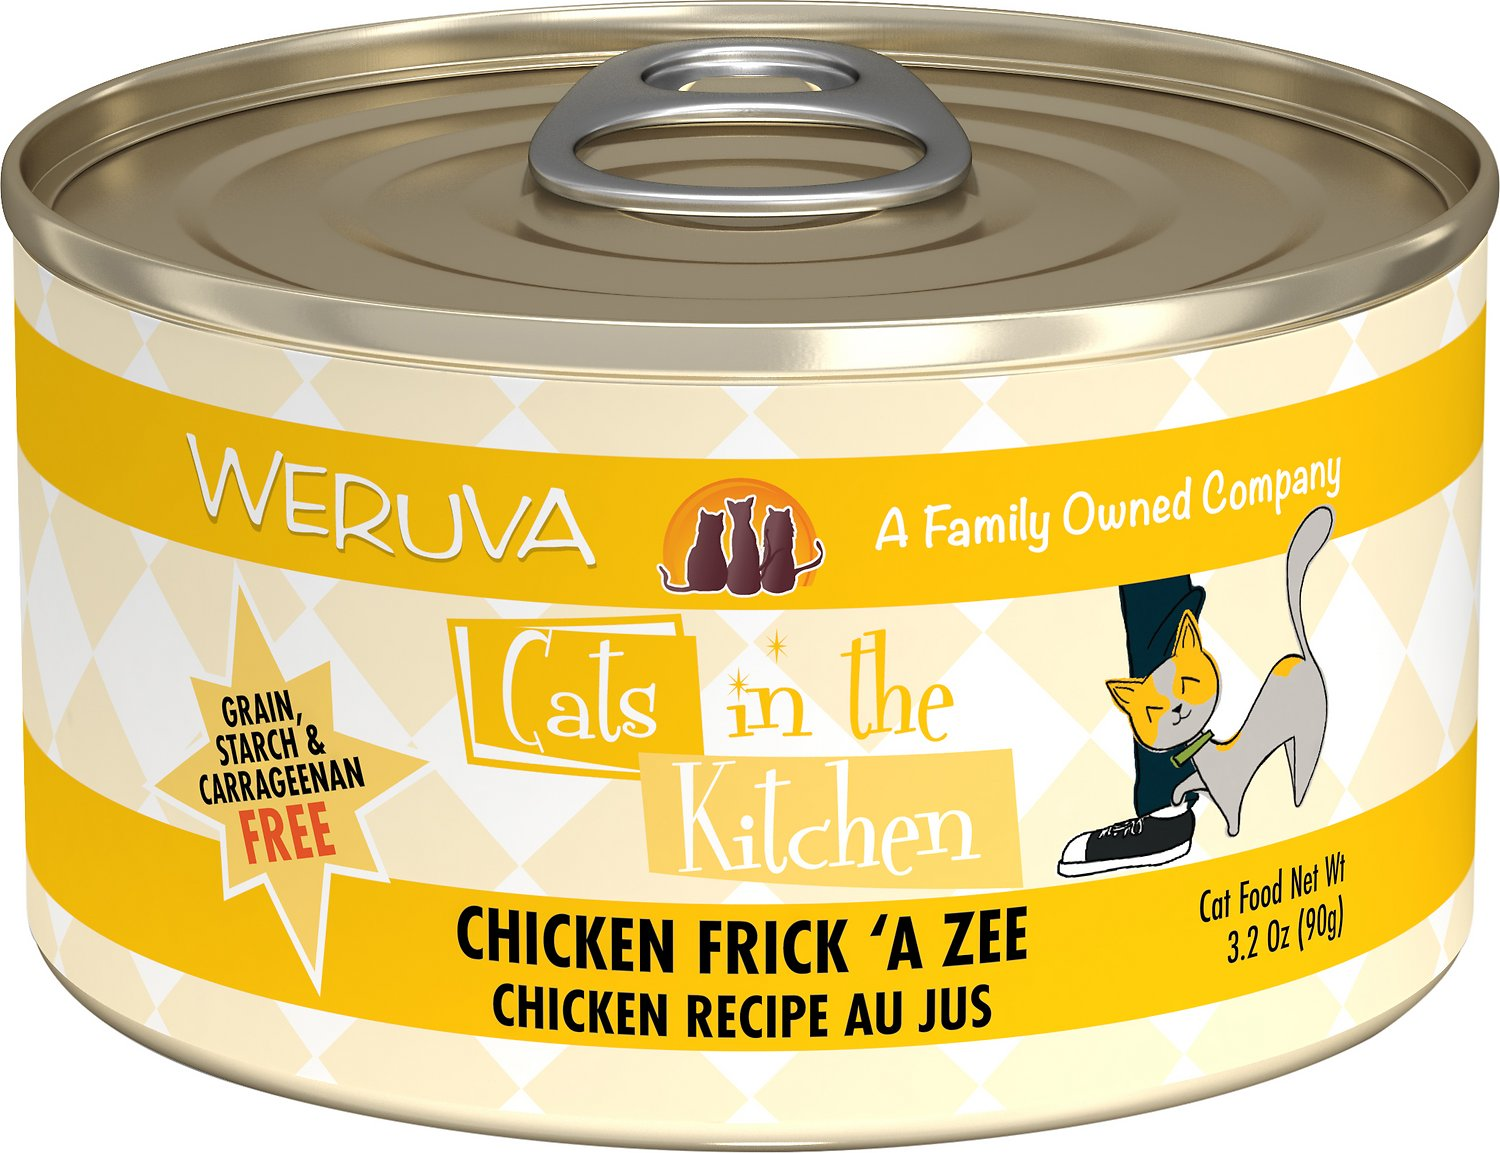 Weruva Cats in the Kitchen Chicken Frick 'A Zee Chicken Recipe Au Jus Grain-Free Wet Cat Food, 3.2-oz